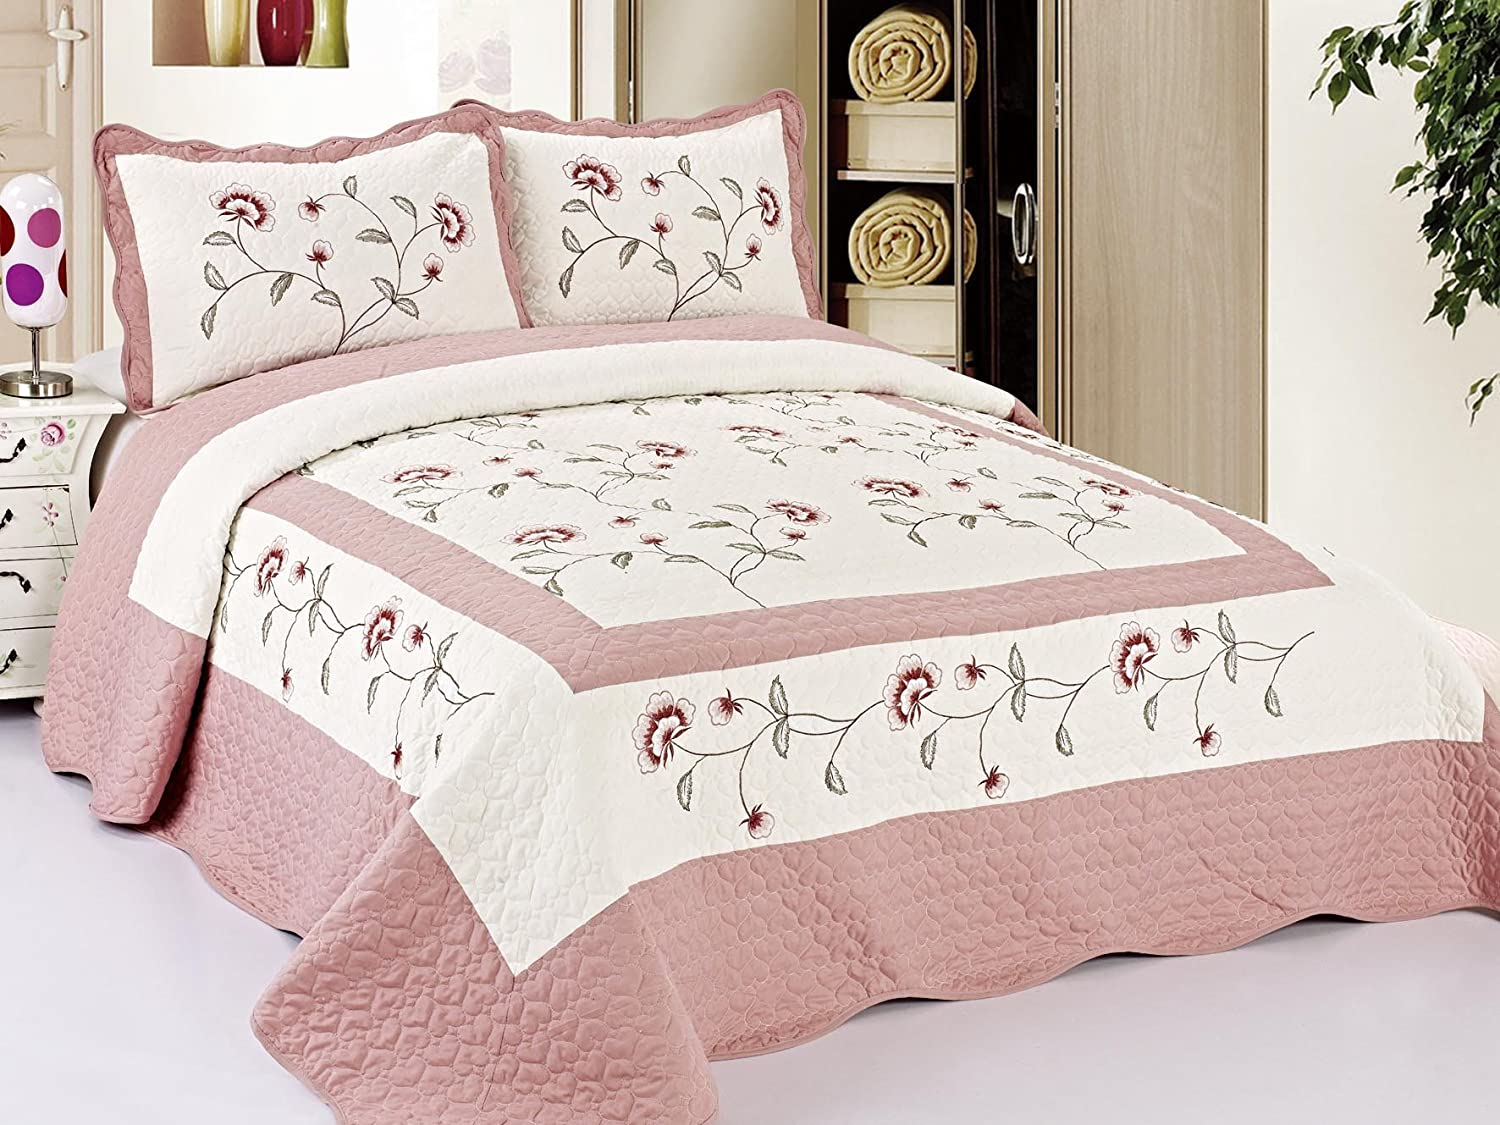 Teen girls pink dusty rose bedding sets ease